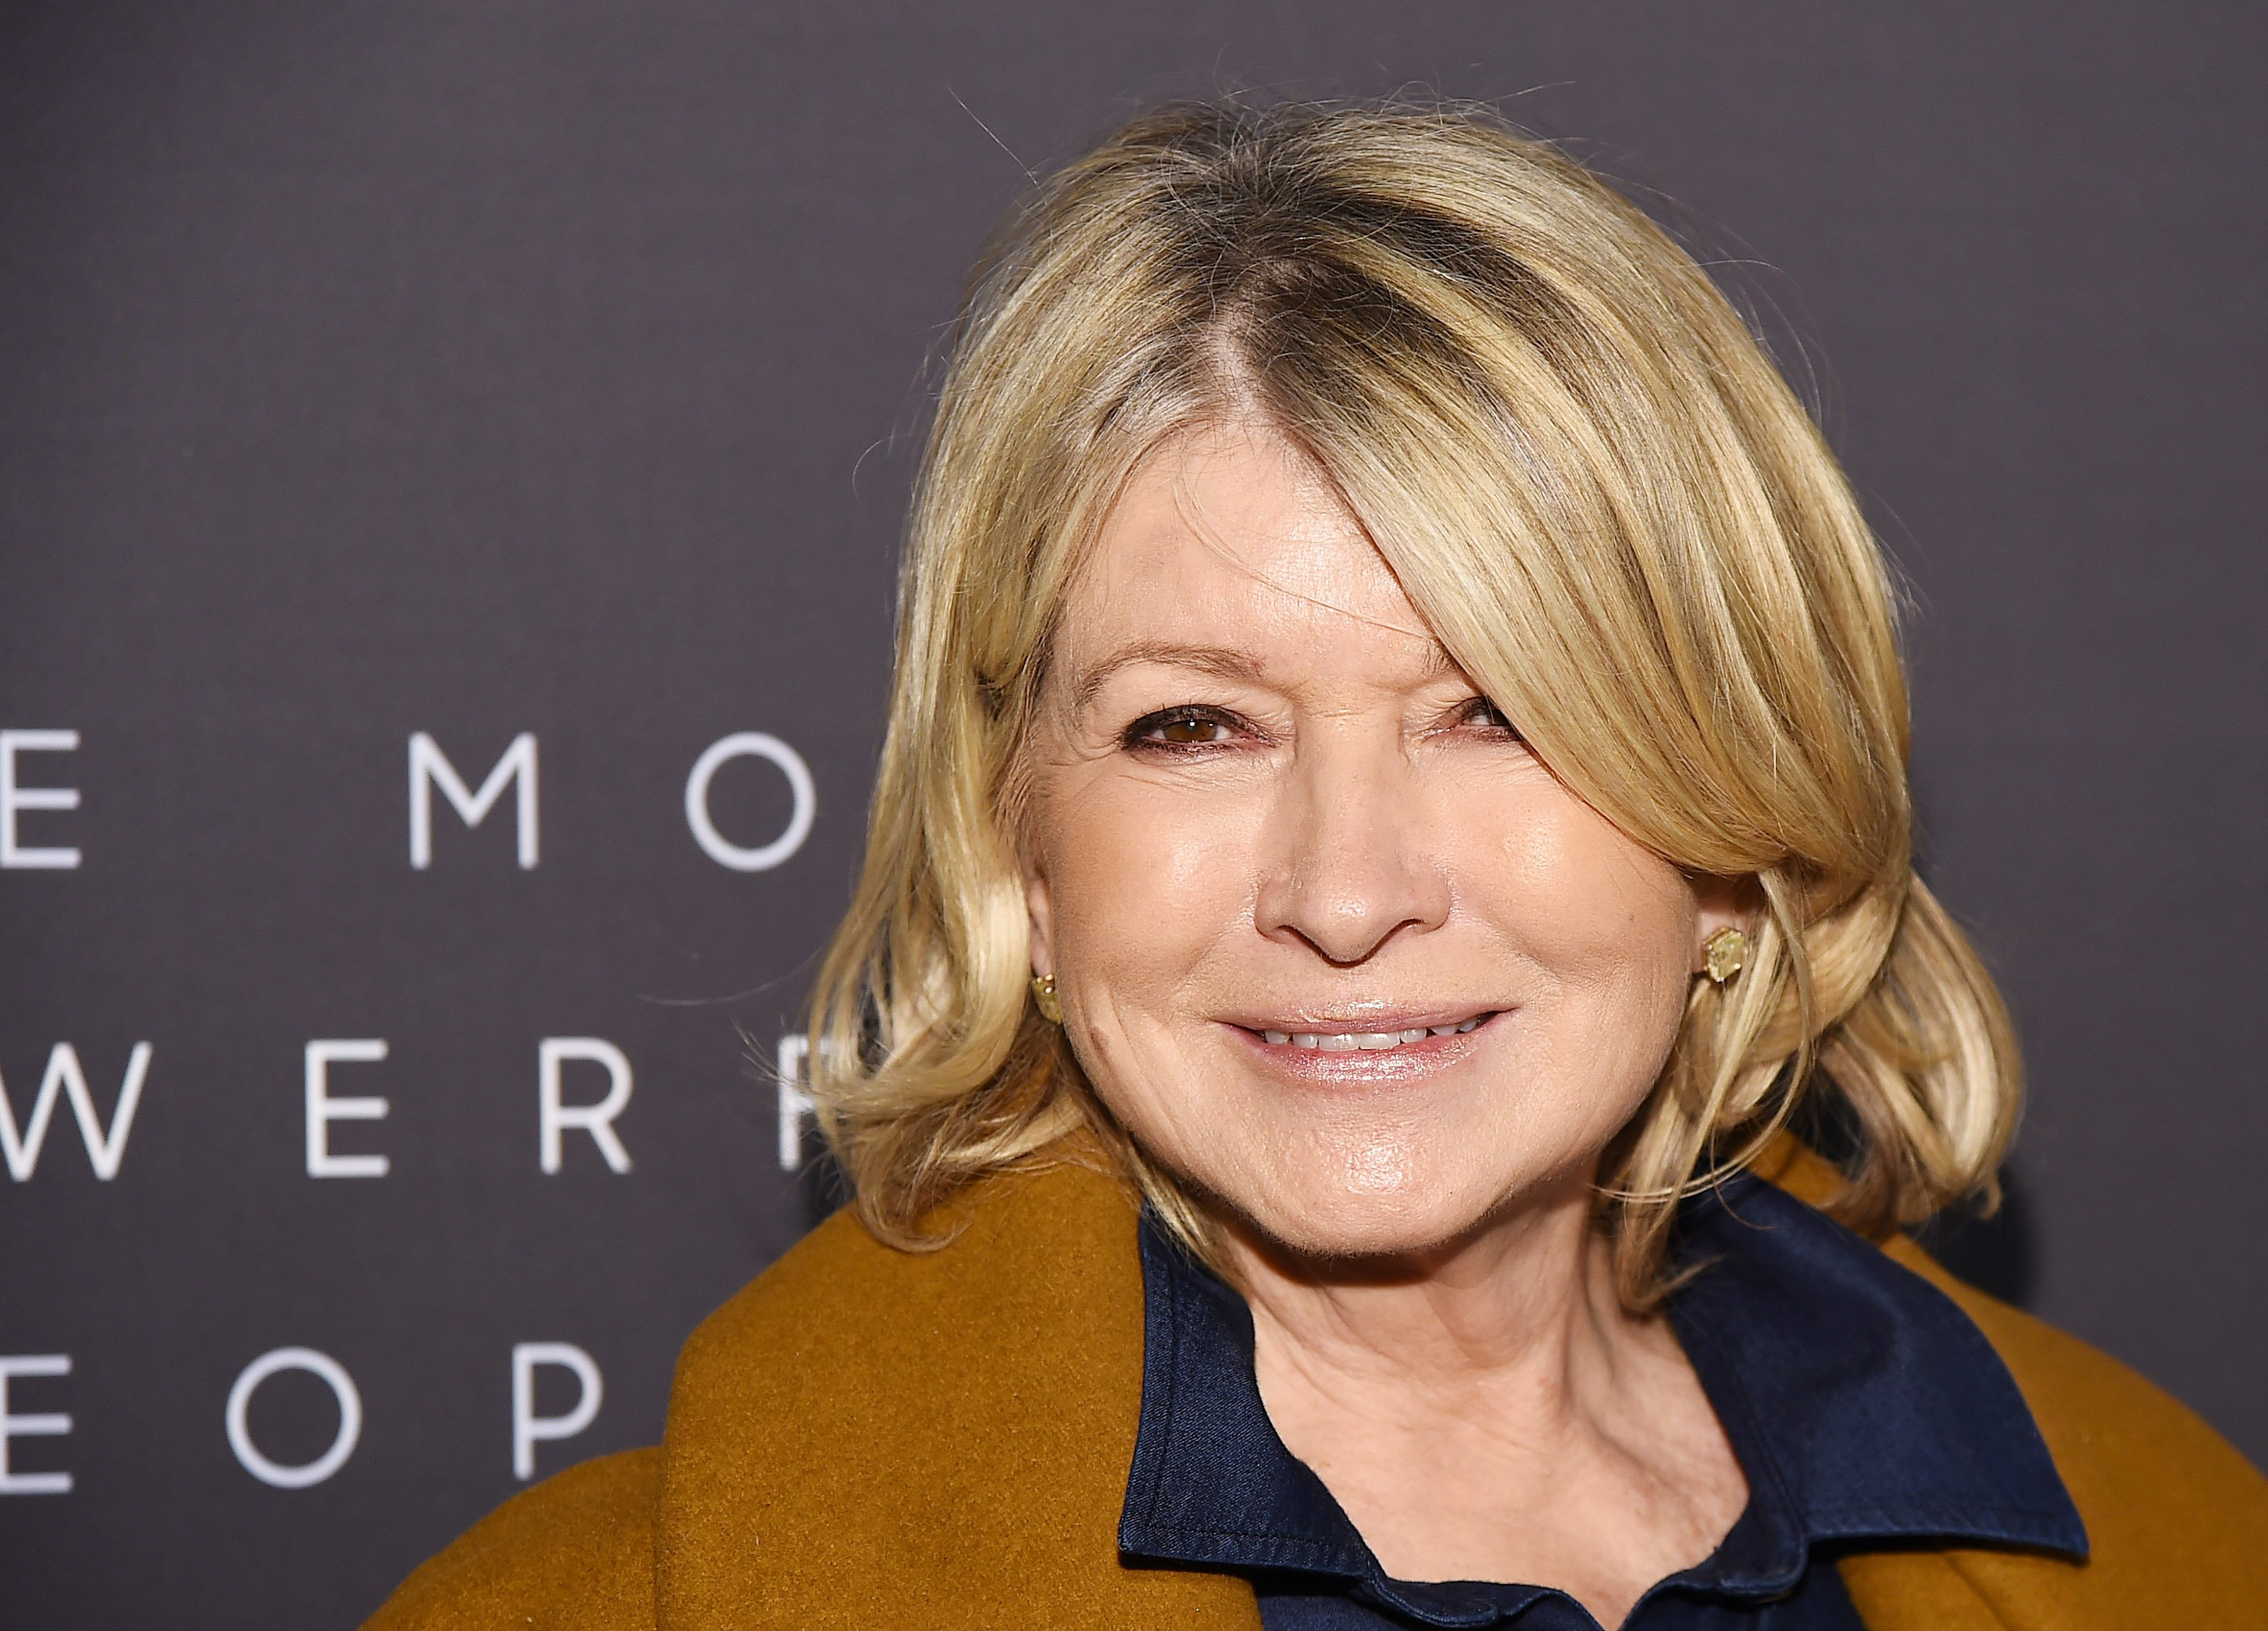 Martha Stewart attends the The Hollywood Reporter's 9th Annual Most Powerful People In Media at The Pool on April 11, 2019 in New York City | Photo: Getty Images